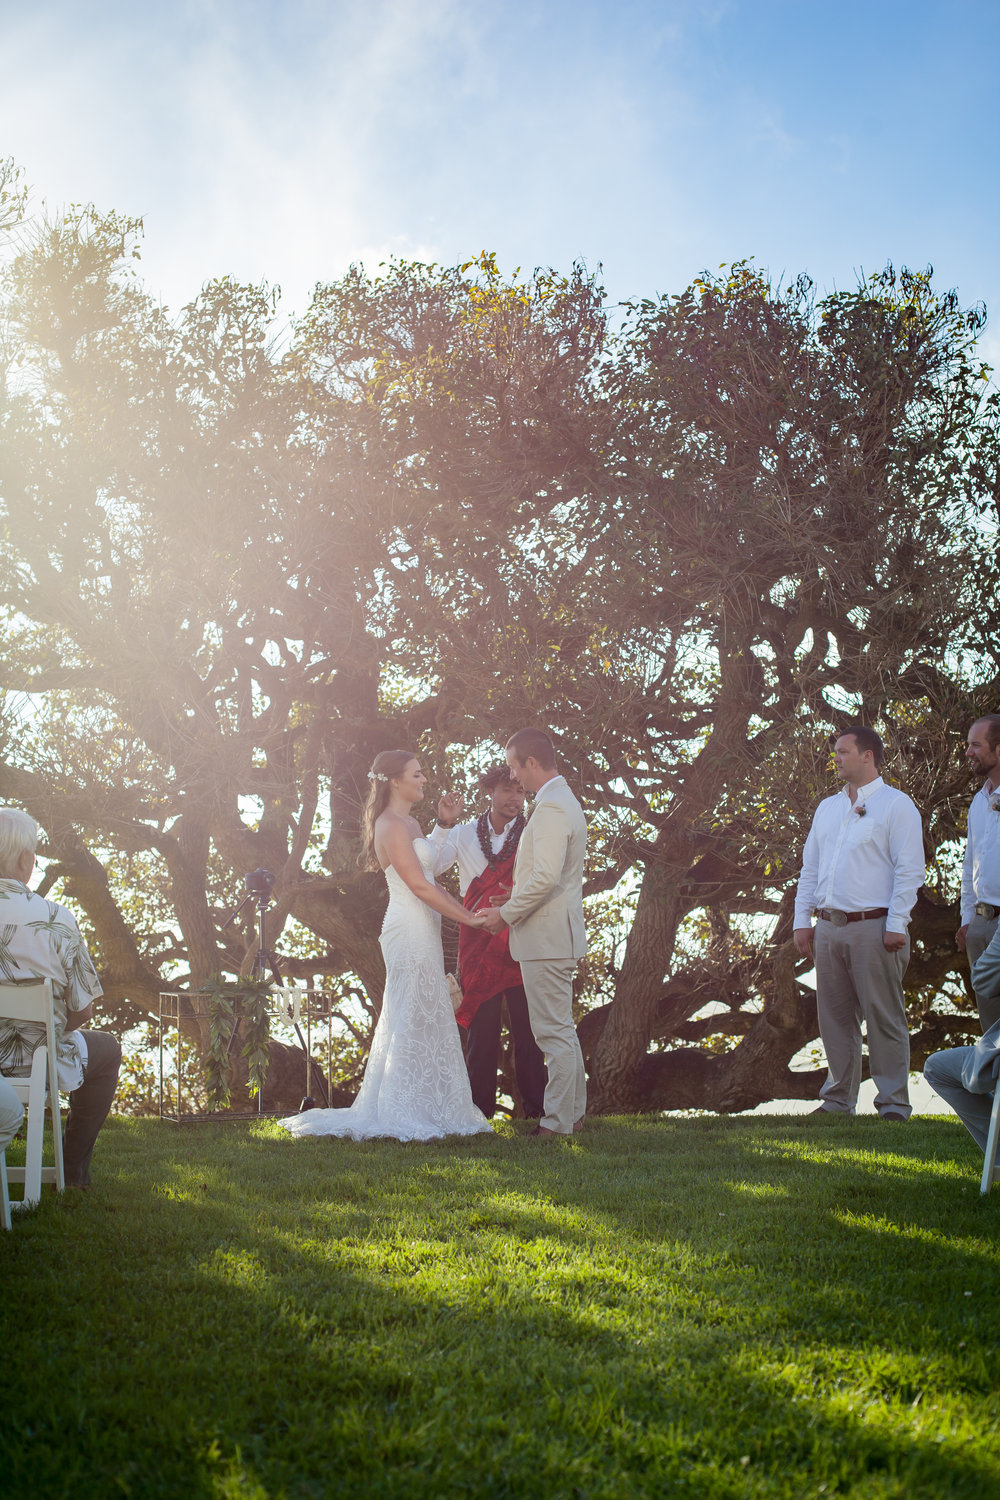 big island hawaii kahua ranch wedding © kelilina photography 20170106164300.jpg